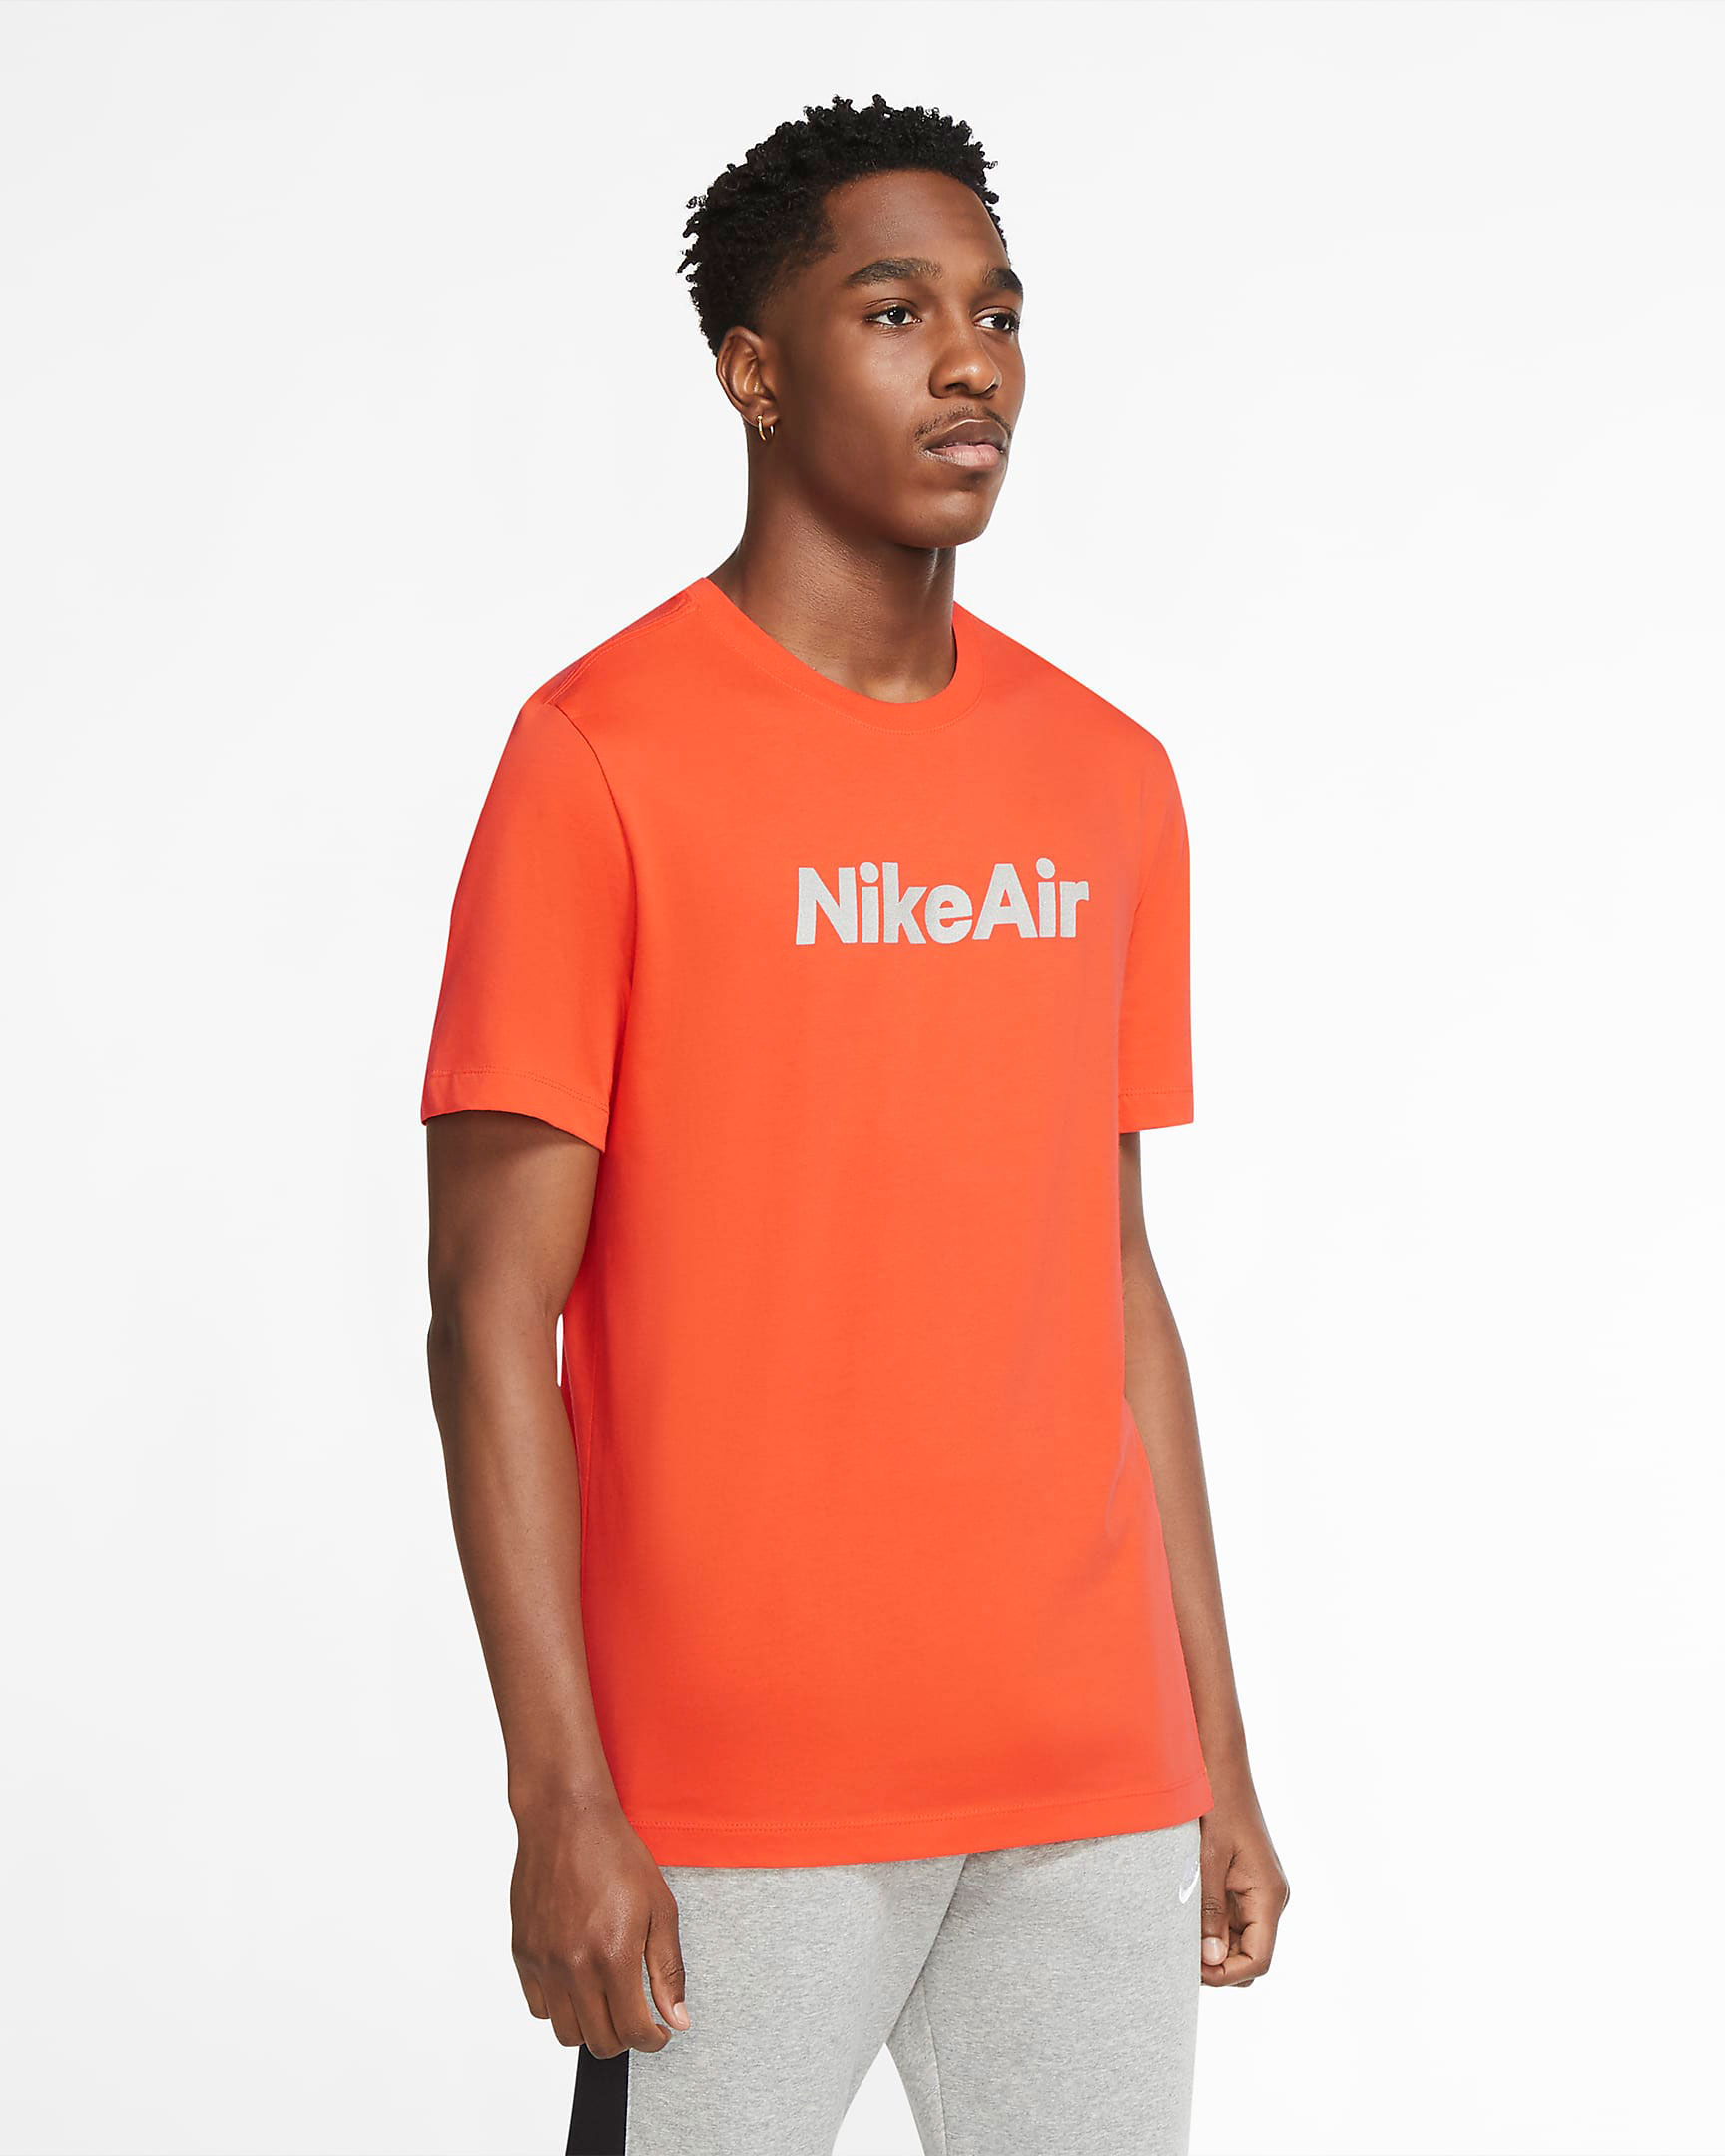 nike-air-shirt-orange